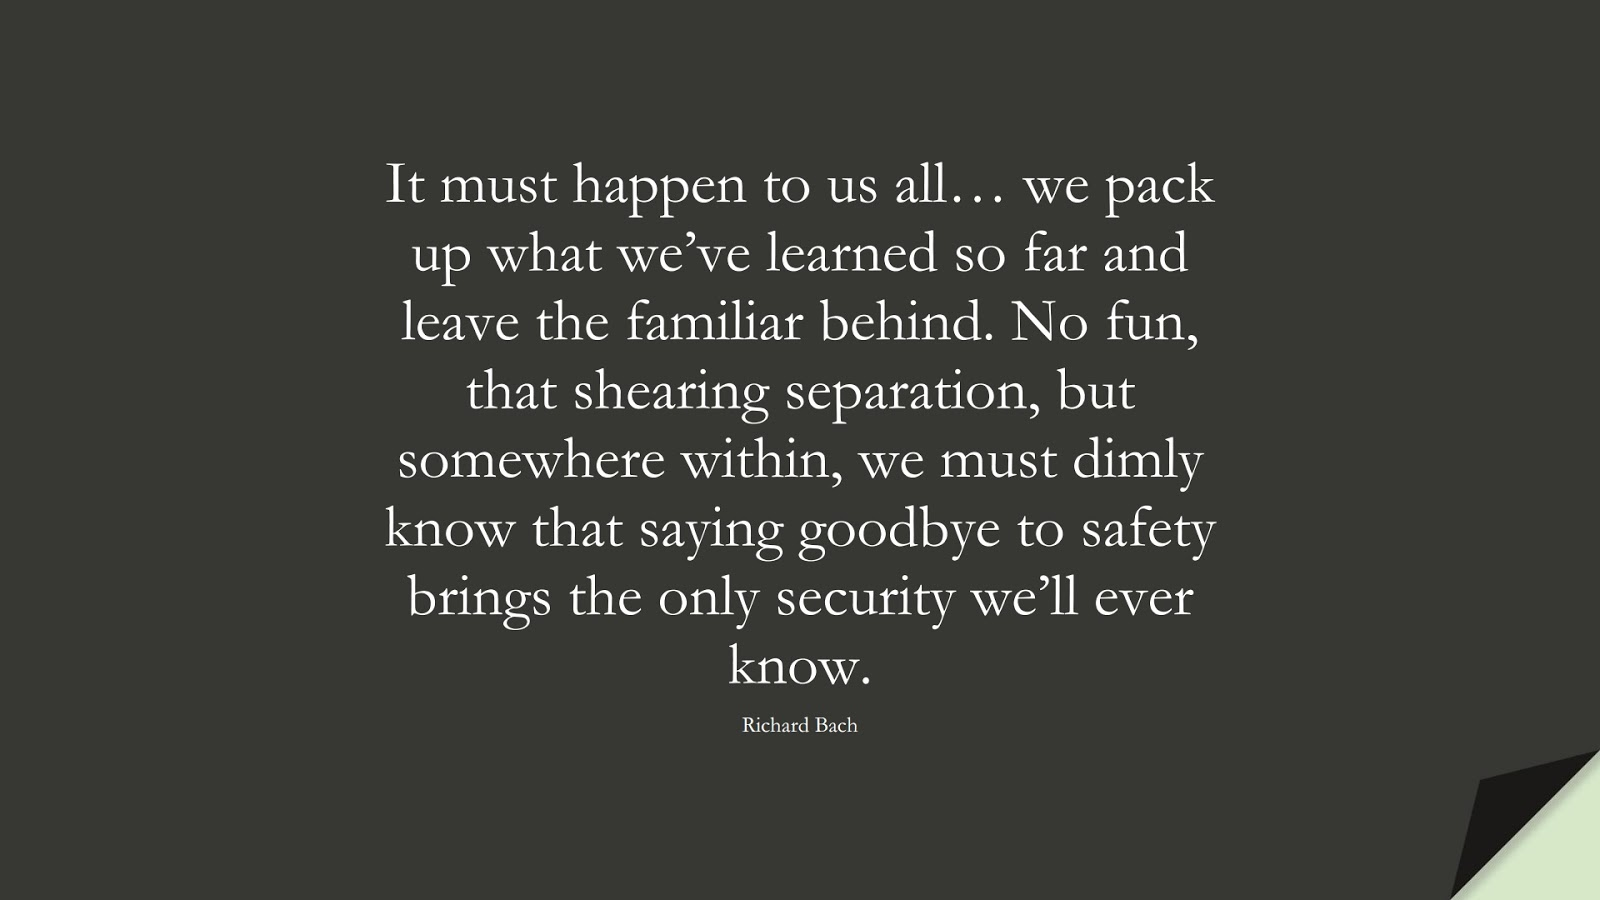 It must happen to us all… we pack up what we've learned so far and leave the familiar behind. No fun, that shearing separation, but somewhere within, we must dimly know that saying goodbye to safety brings the only security we'll ever know. (Richard Bach);  #ChangeQuotes